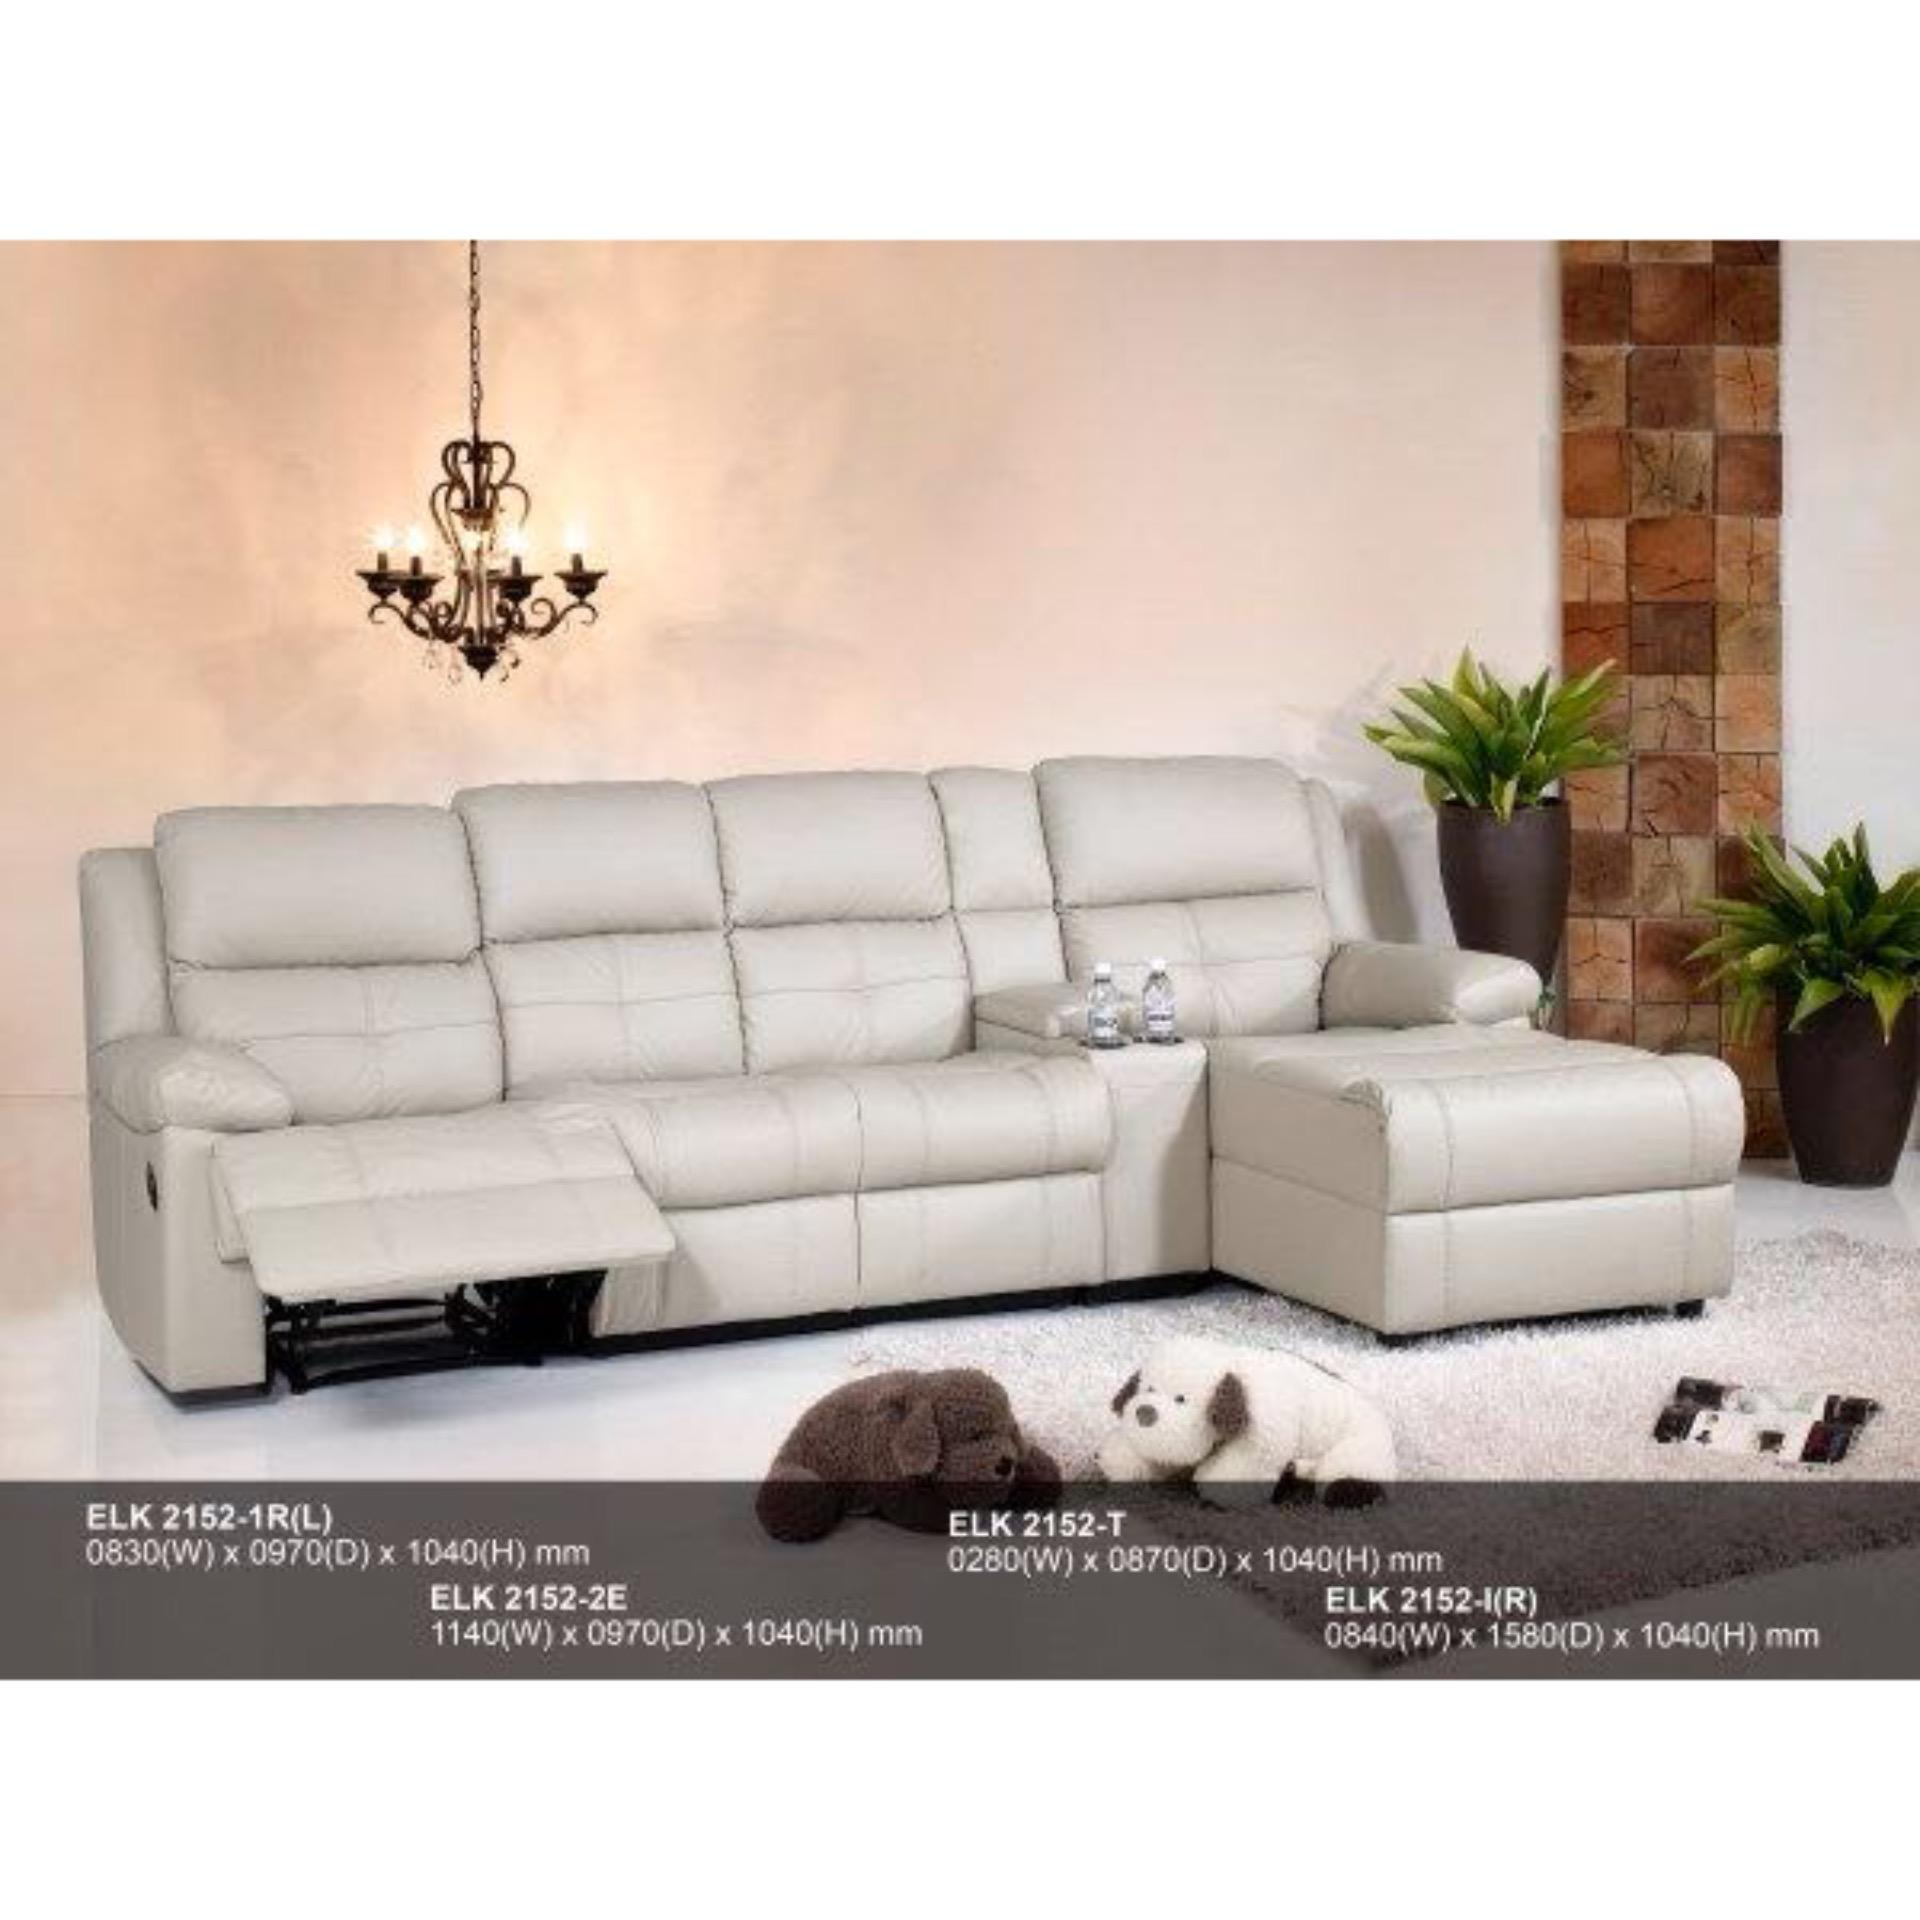 recliner sofa l shape fully leather end 5 1 2021 12 00 am rh lelong com my l shaped recliner sofa india l shaped reclining leather sofa